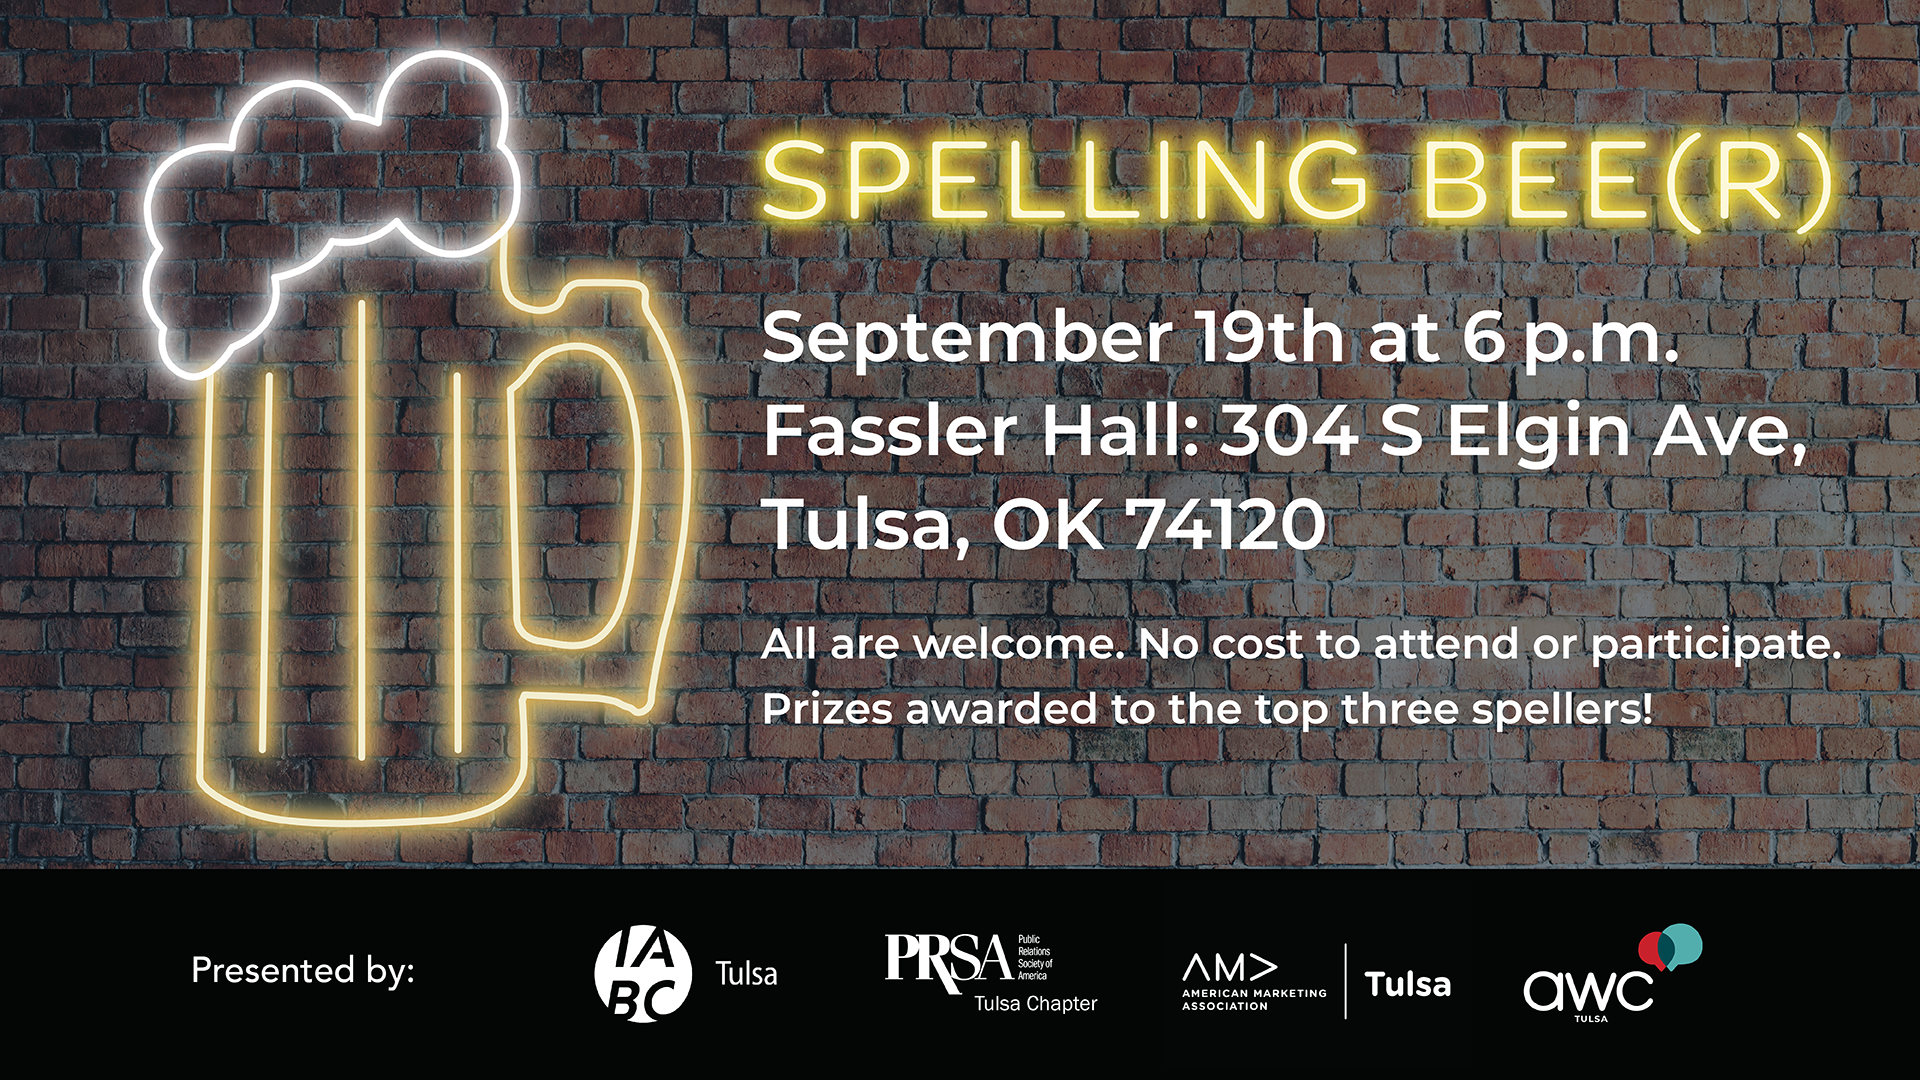 SPELLING BEE(R) September 19th at 6 p.m. Fassler Hall: 304 S Elgin Ave, Tulsa, OK 74120 All are welcome. No cost to attend or participate. Prizes awarded to the top three spellers!